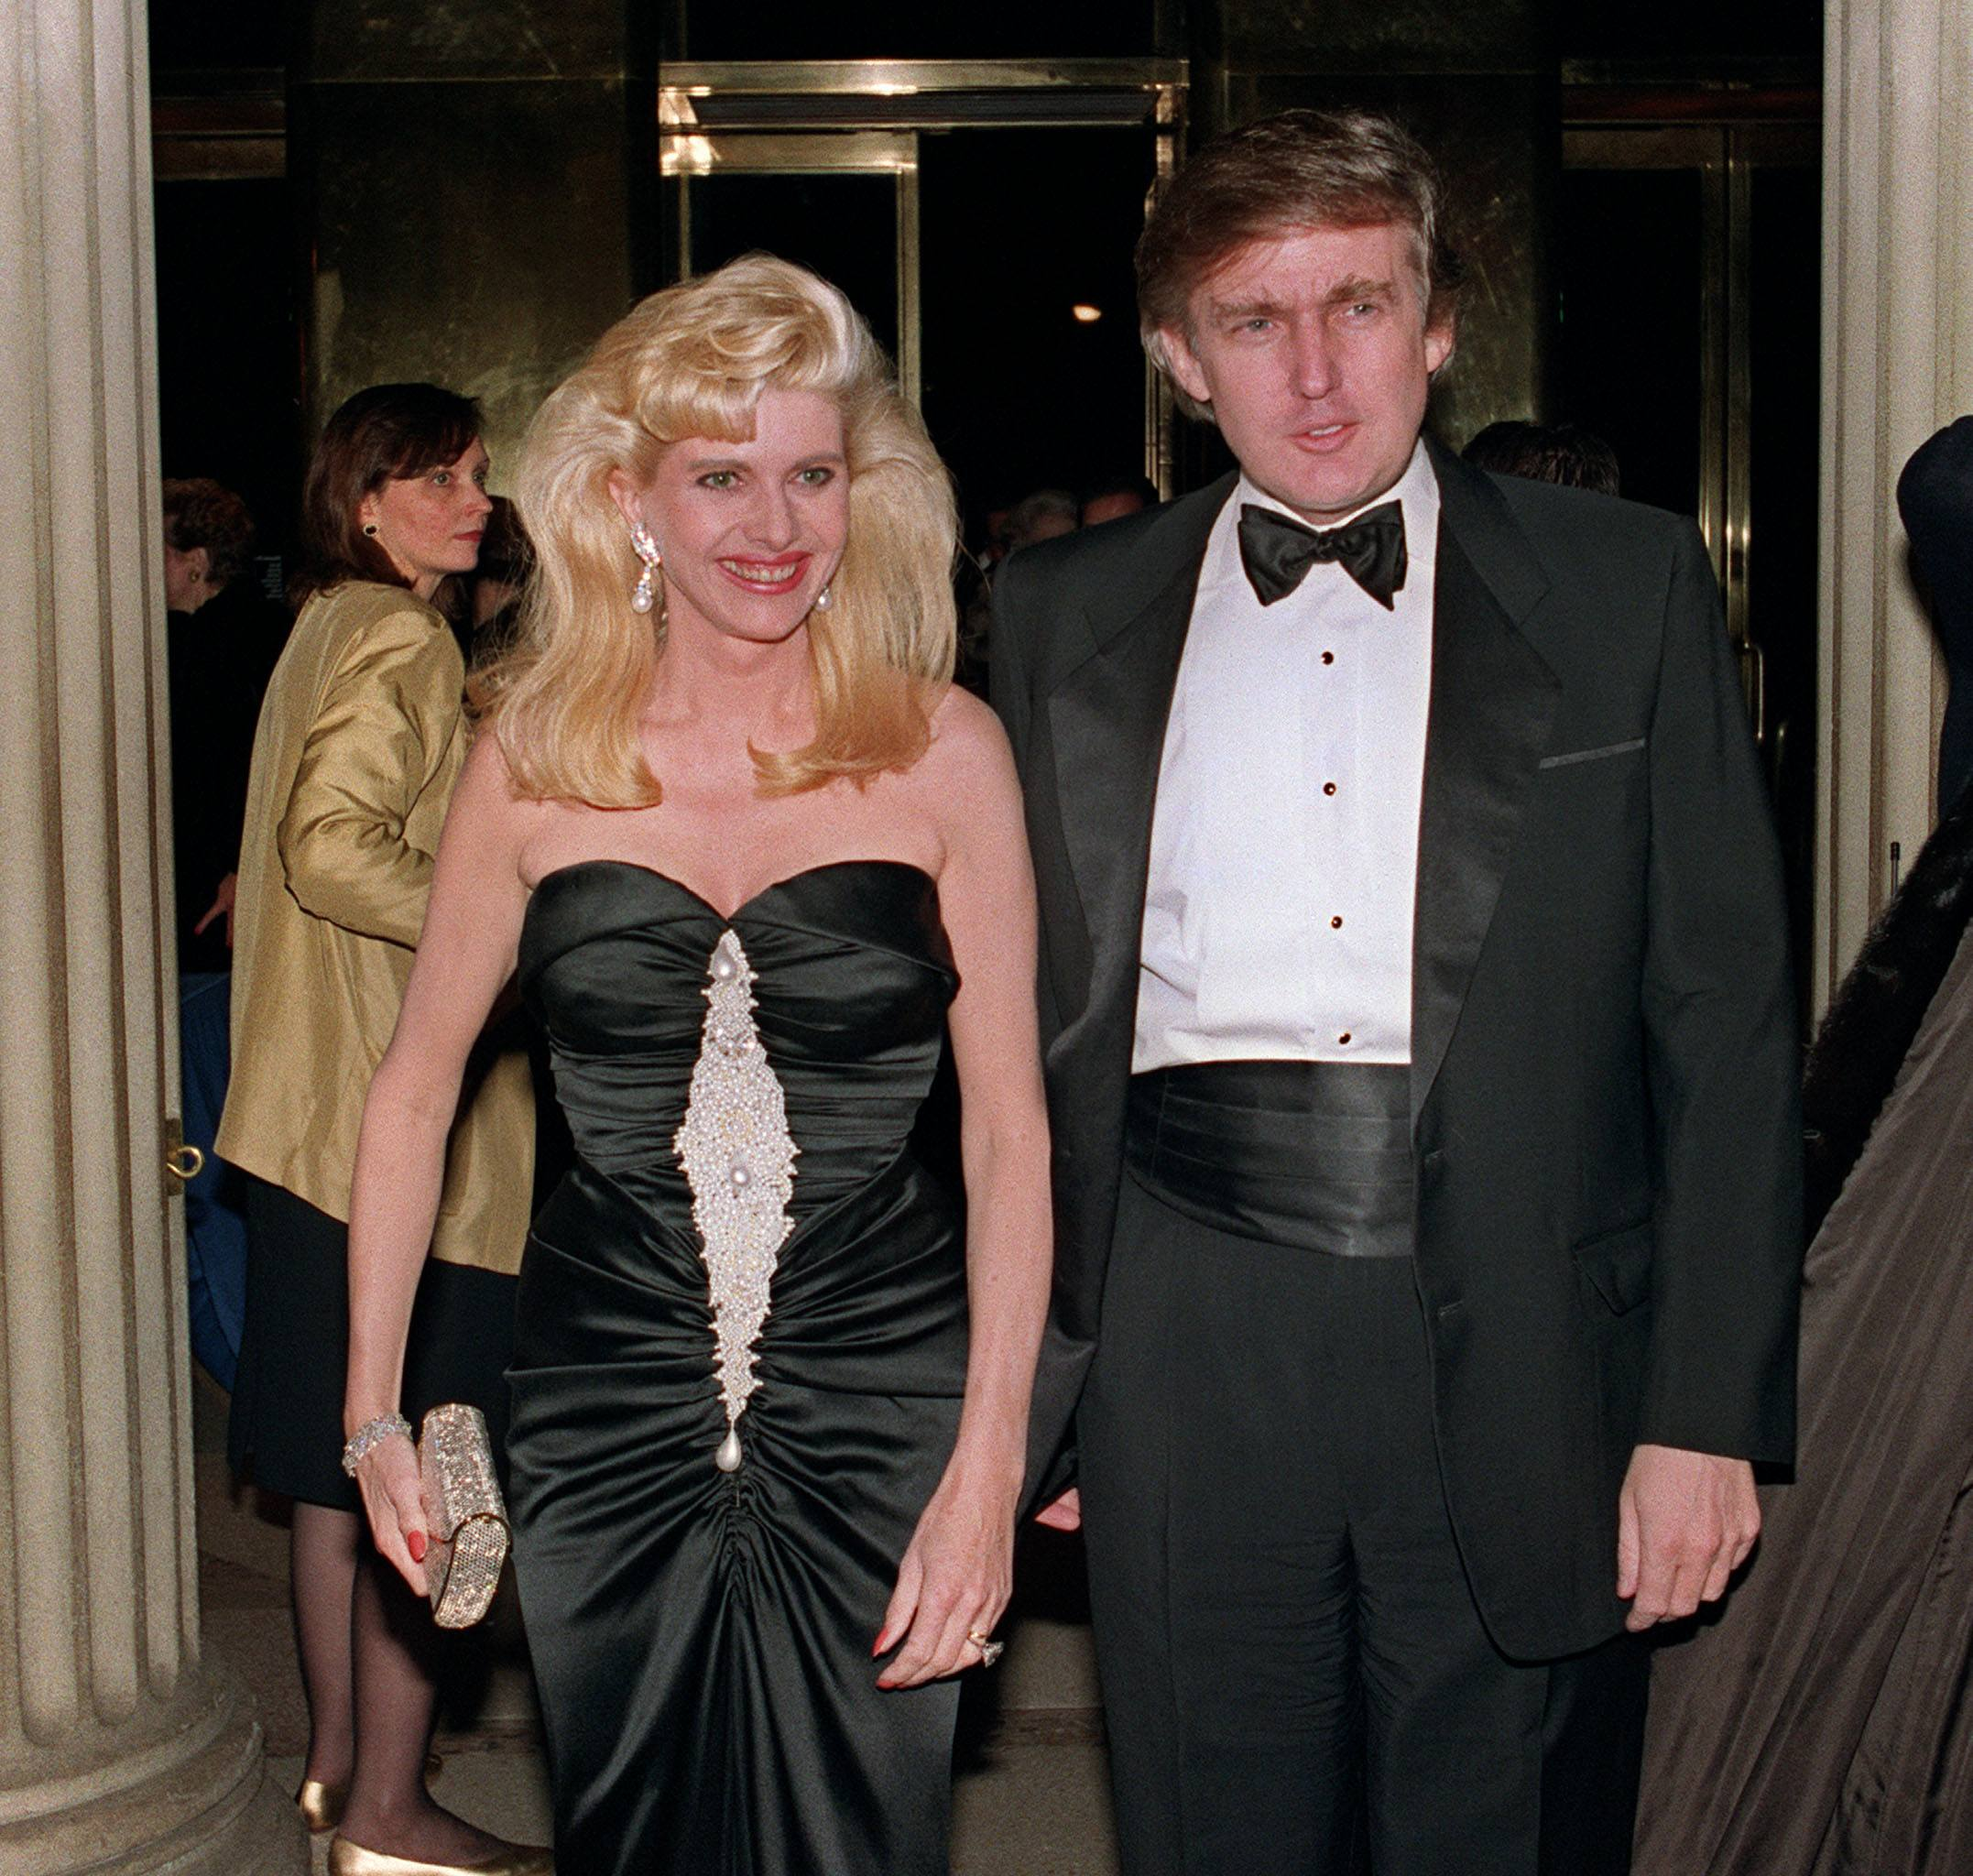 Billionaire Donald Trump and his wife Ivana in 1989